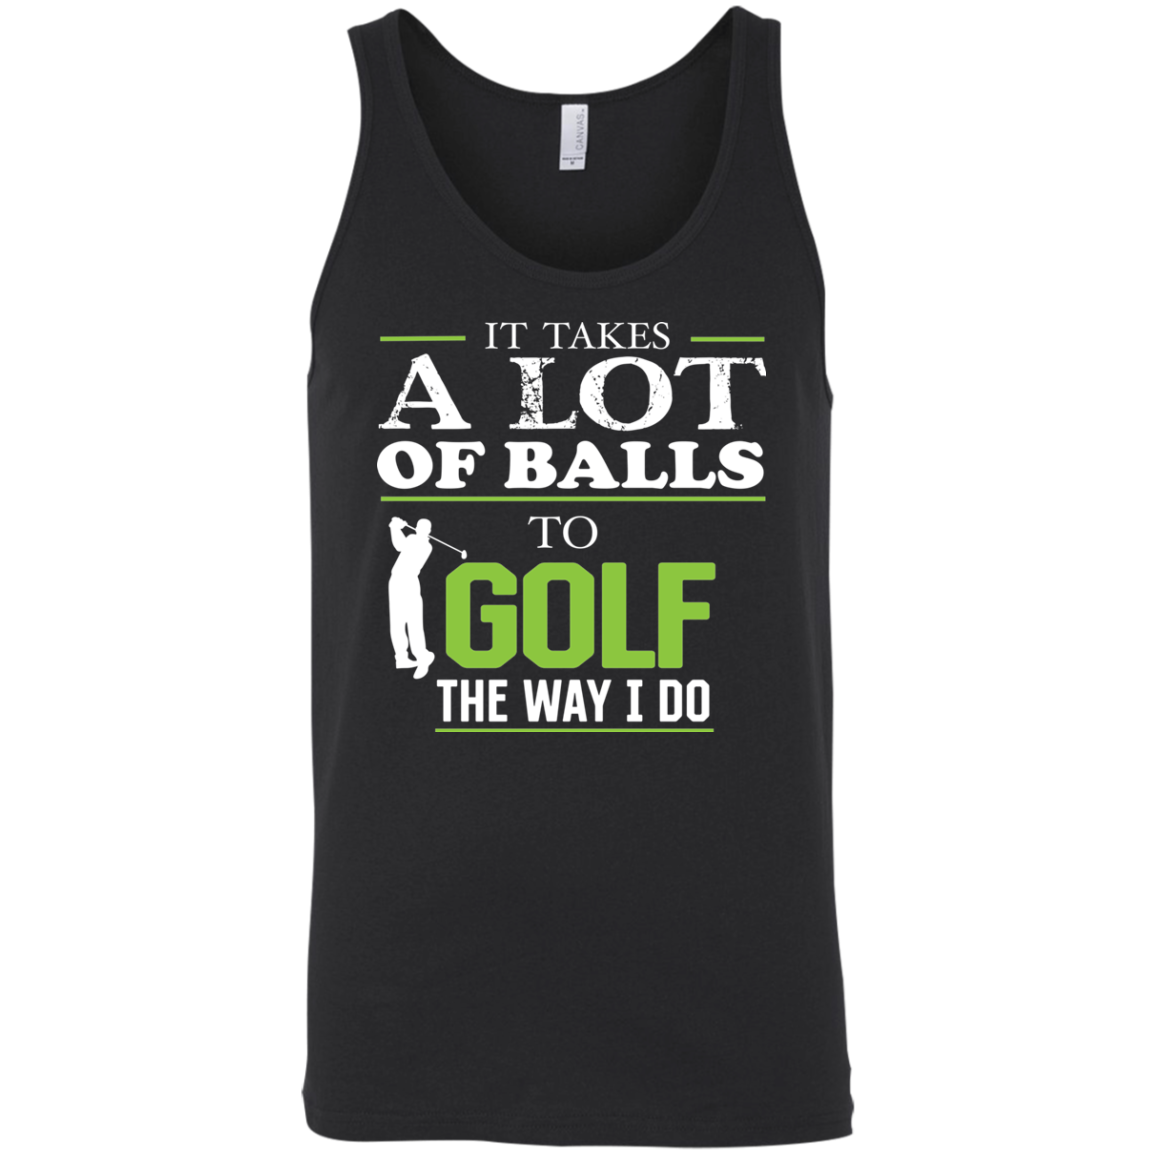 It Takes A lot Of Balls To Golf The Way I Do Funny Golf Tank Top - Green Letters